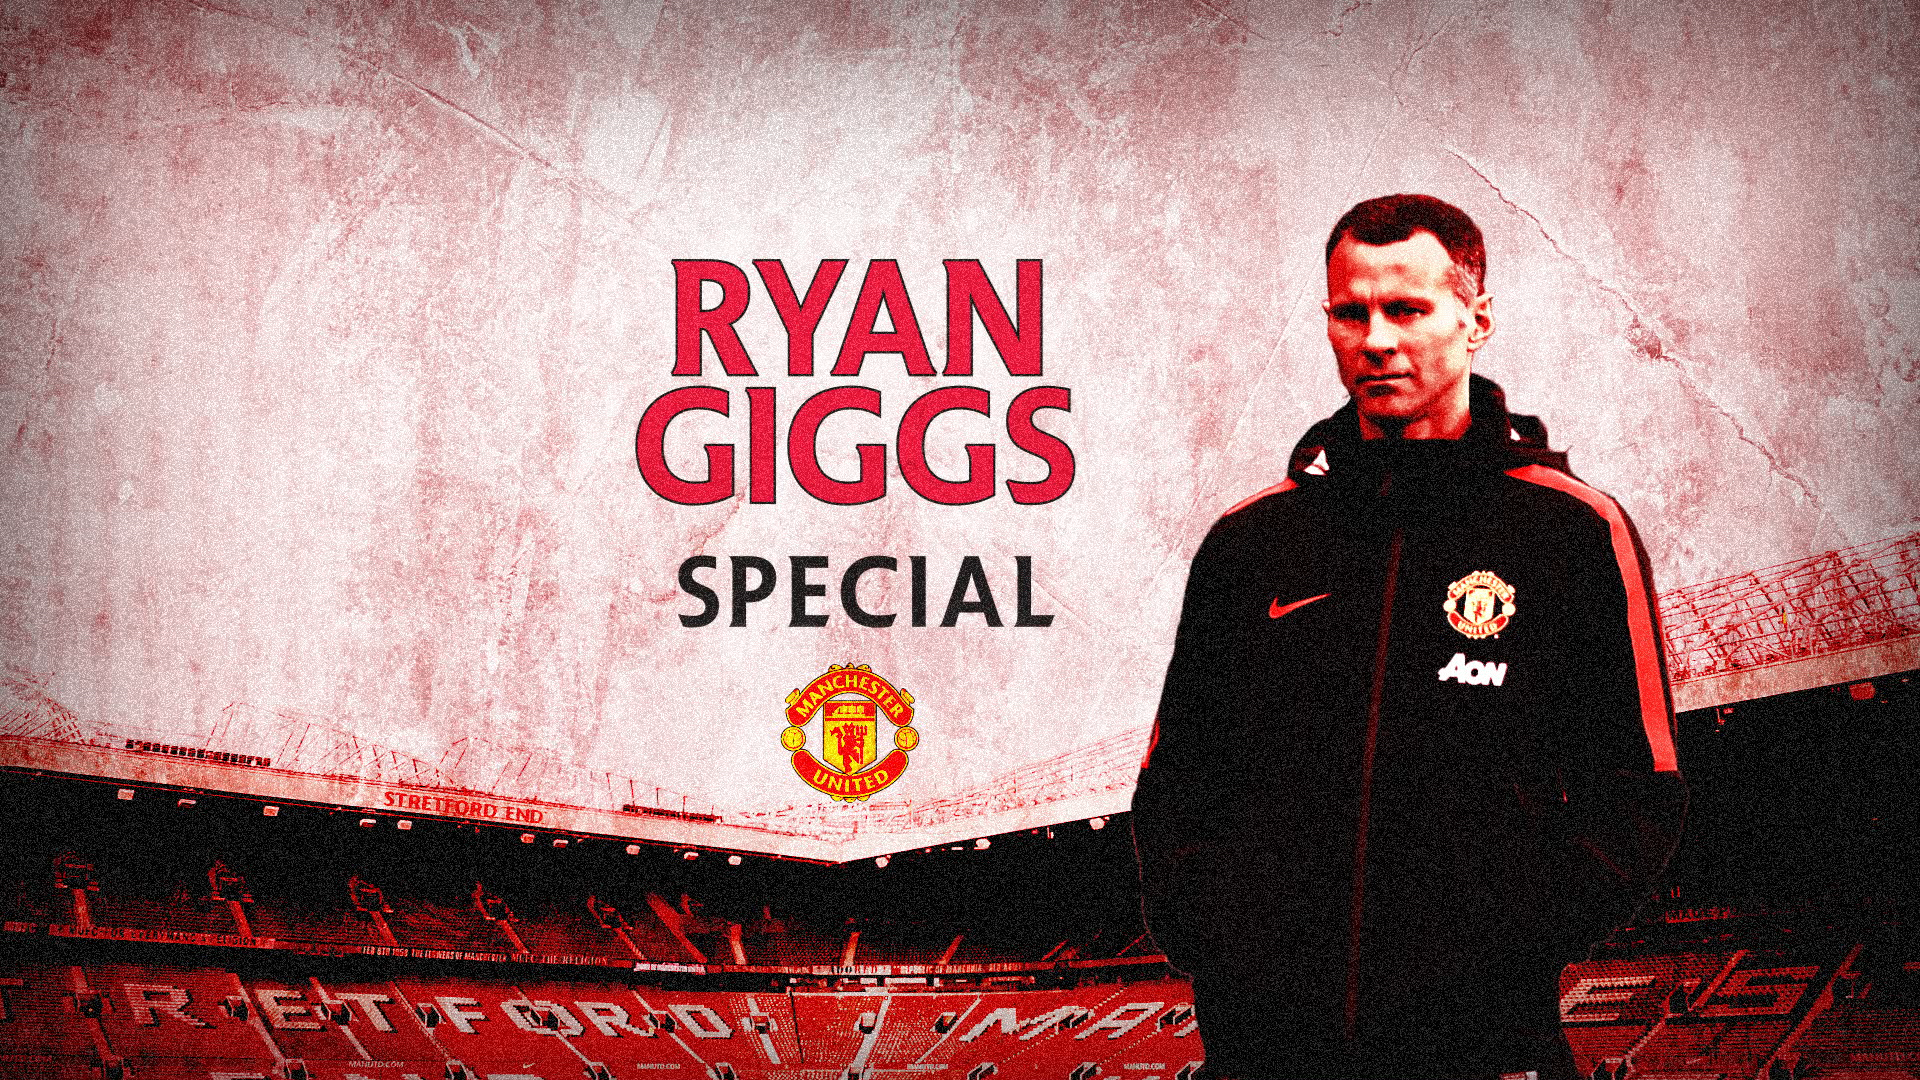 PLW Ryan Giggs Special Sting v4 (0-00-04-24).png